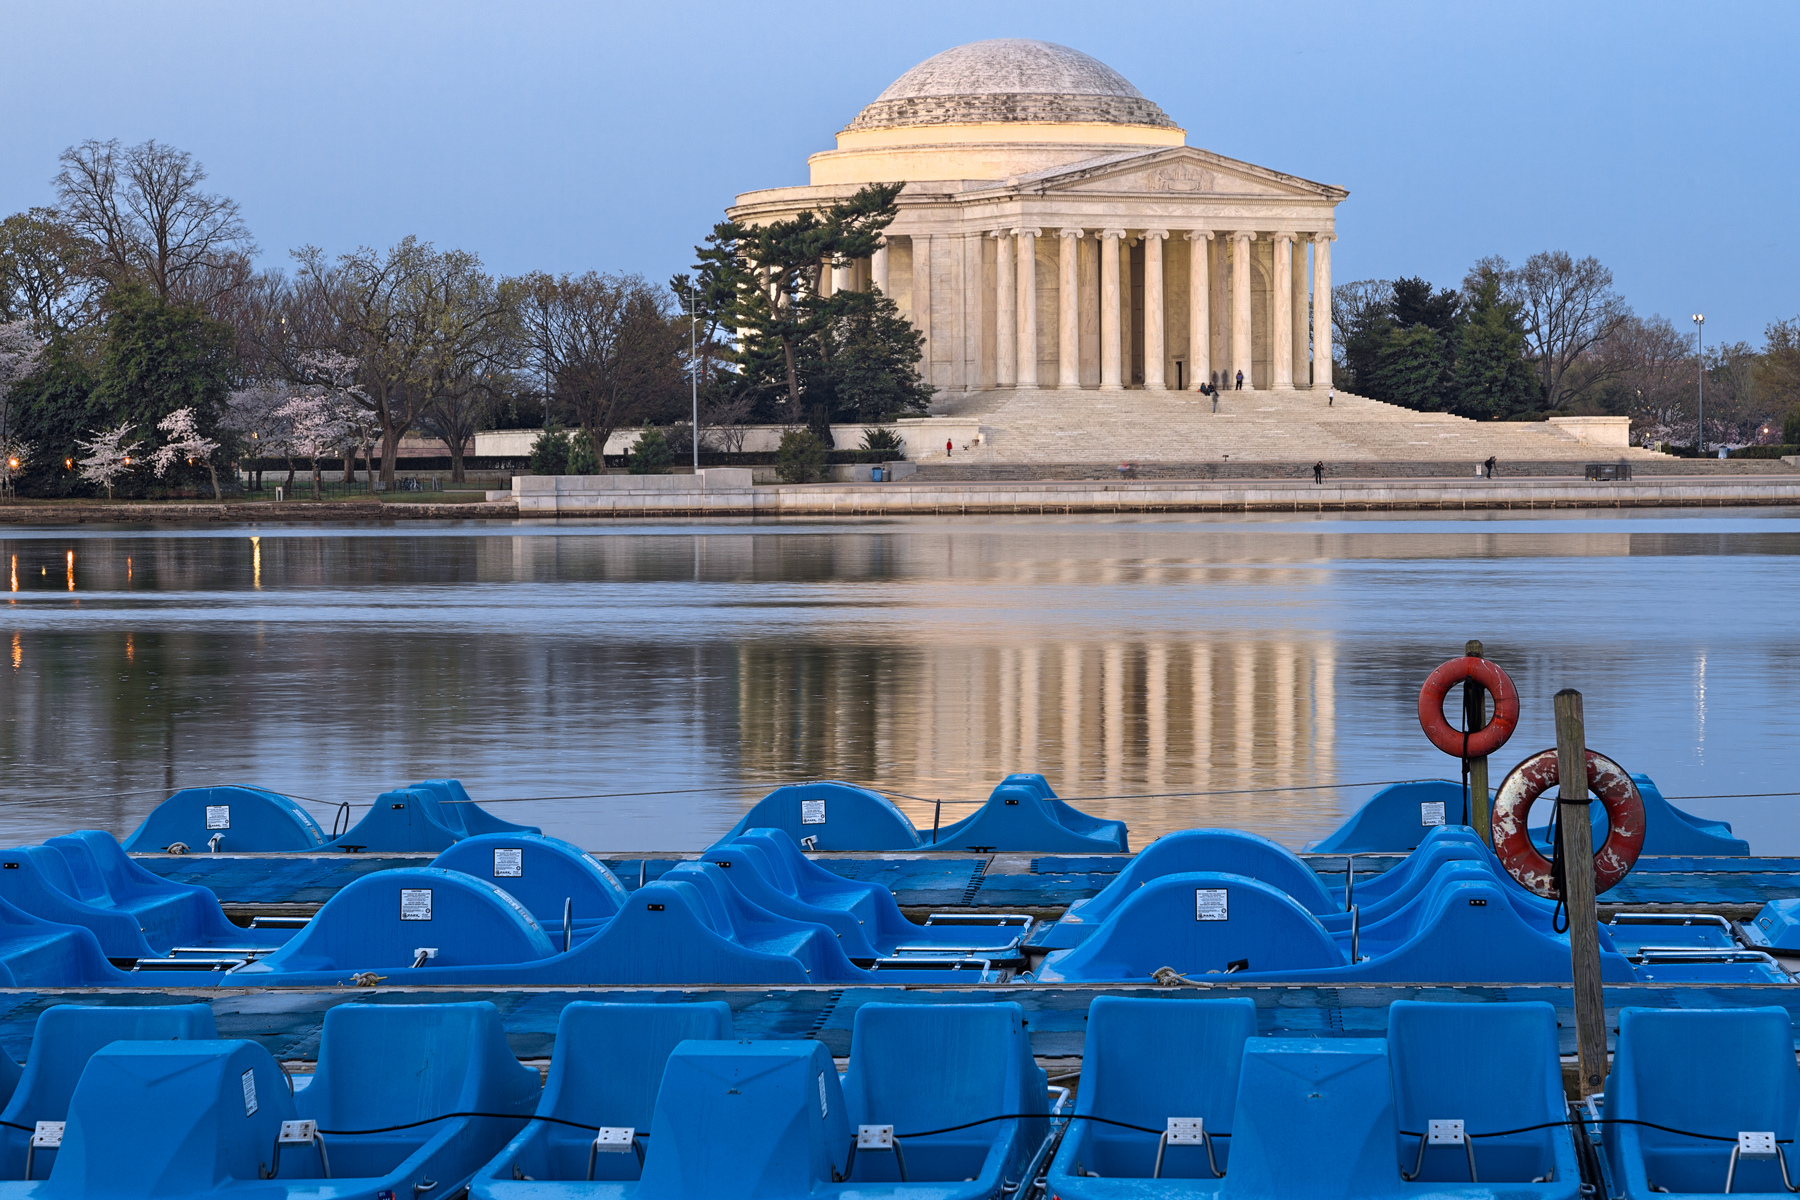 Jefferson memorial & pedal boats - hdr photo